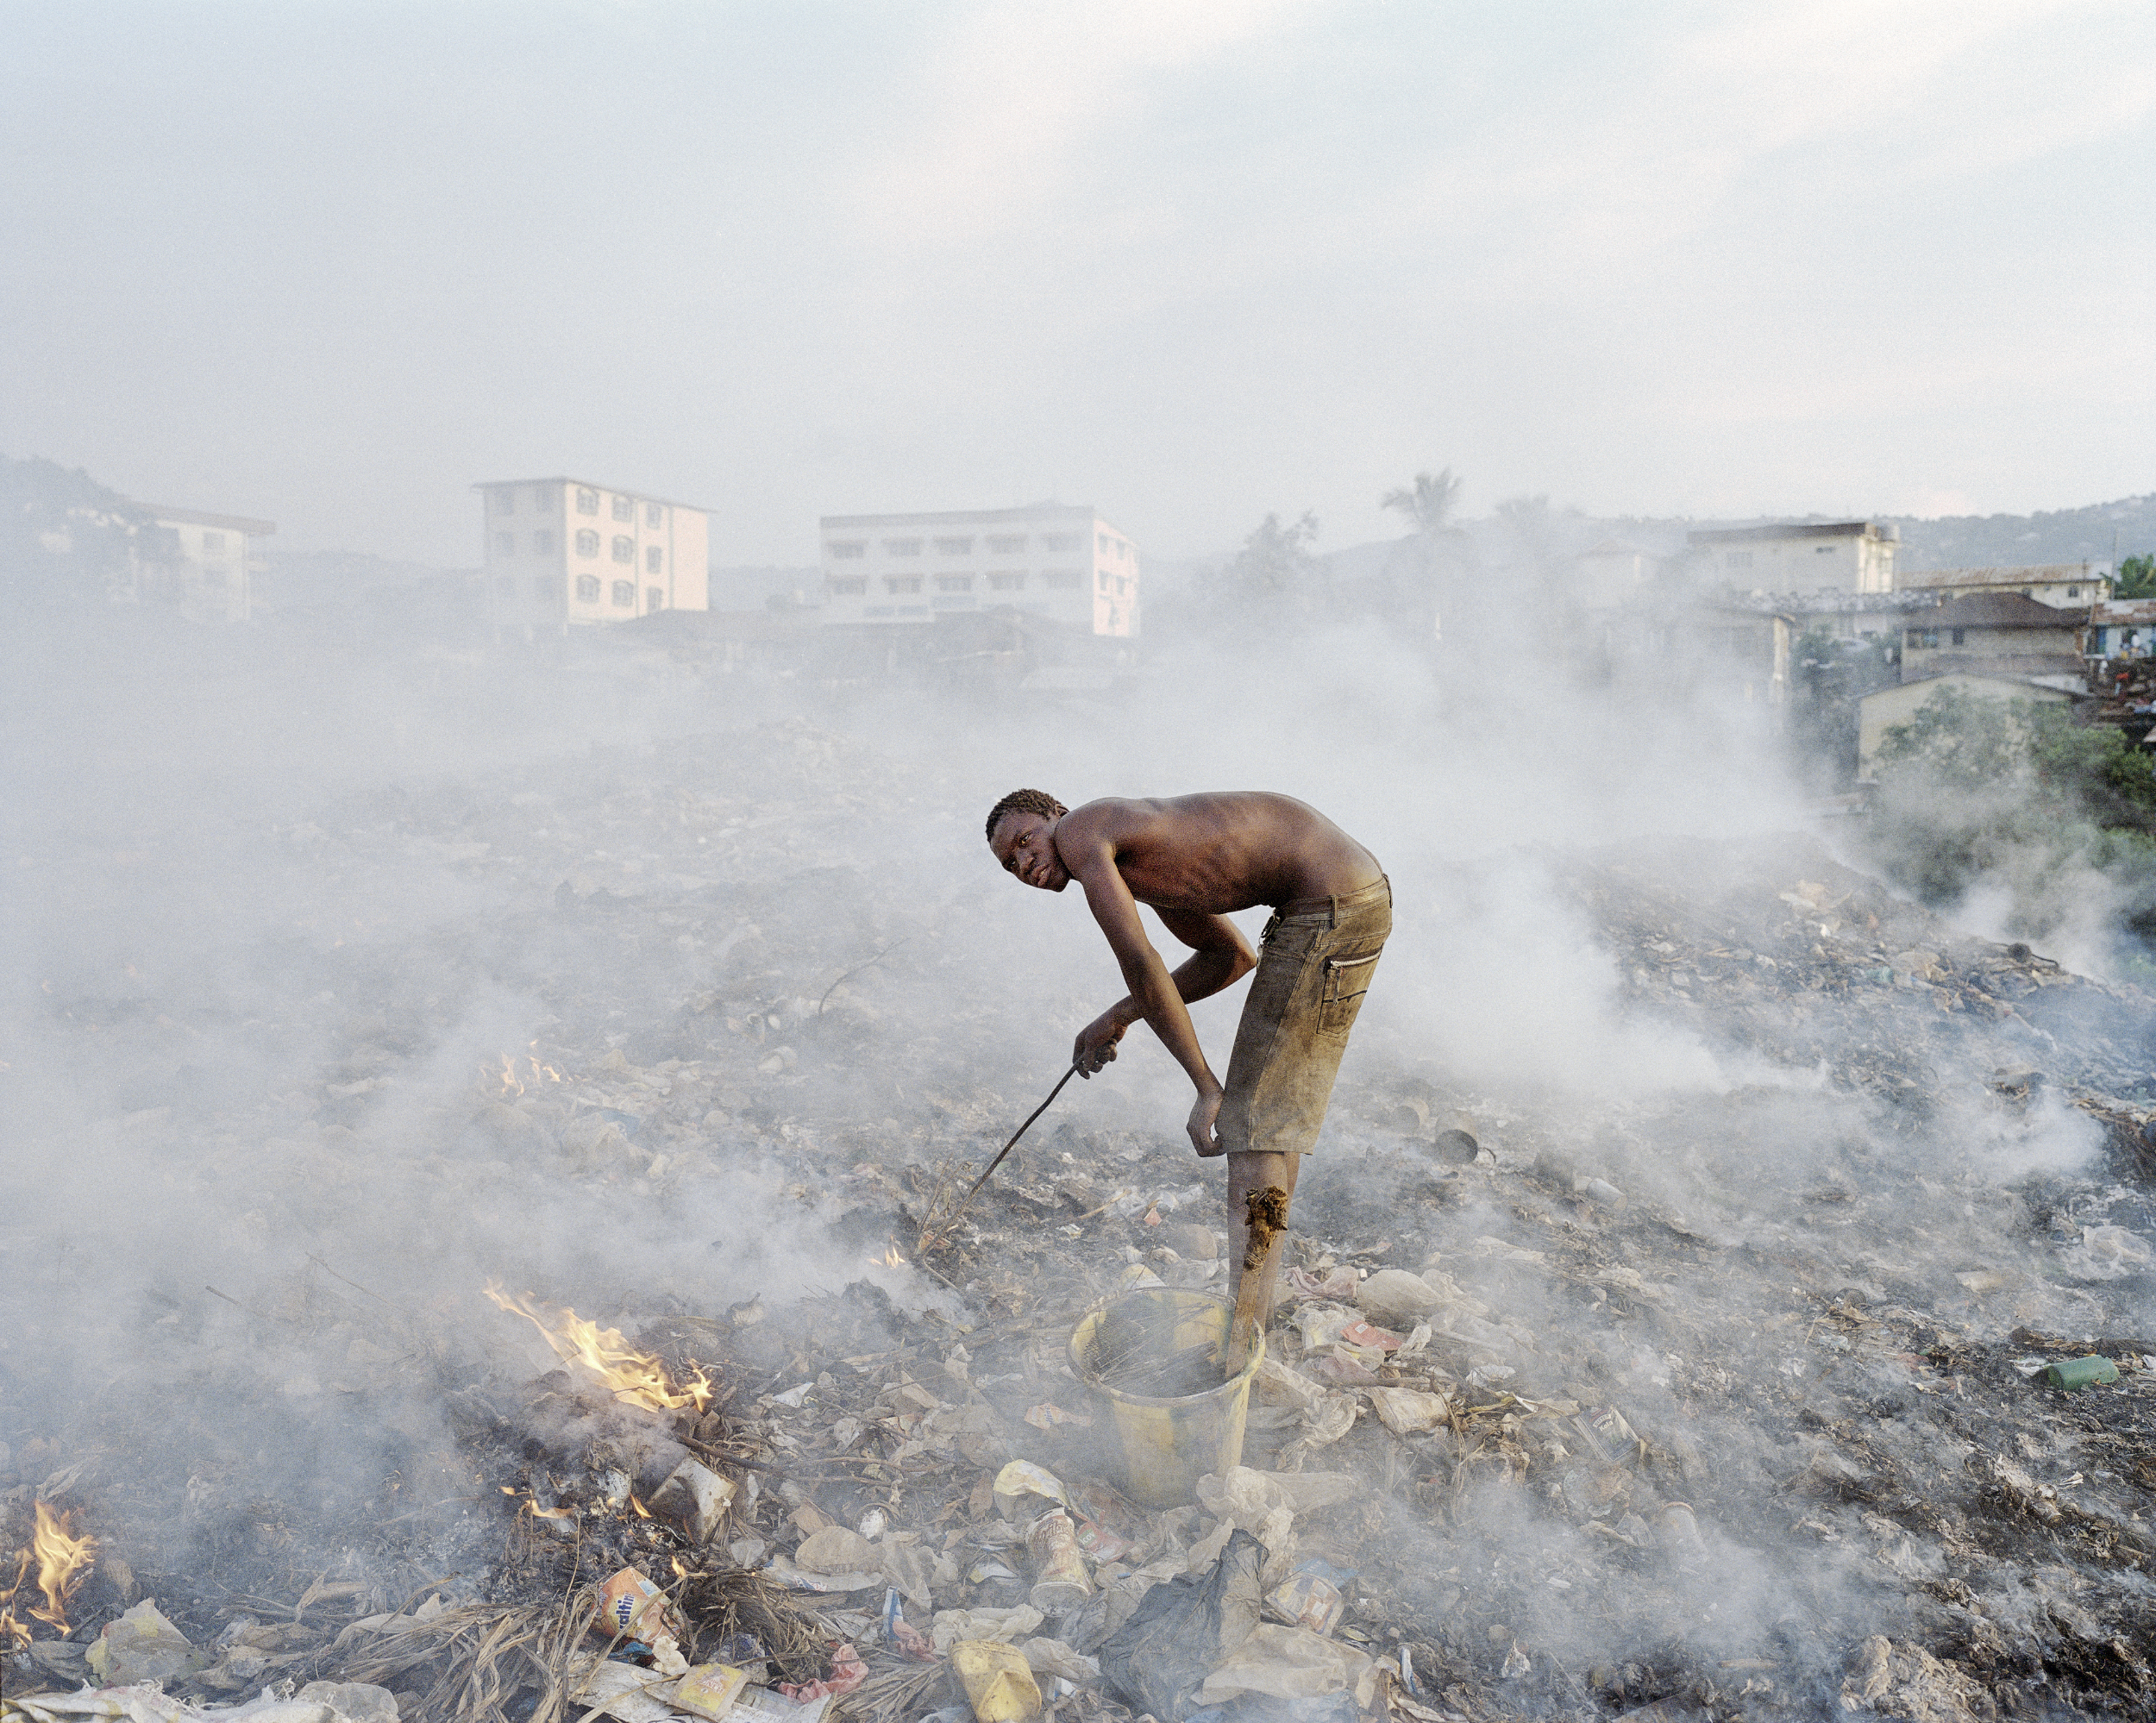 Grey Bush dumpsite, source of stagnate water and malaria. Freetown, Sierra Leone, 2012.